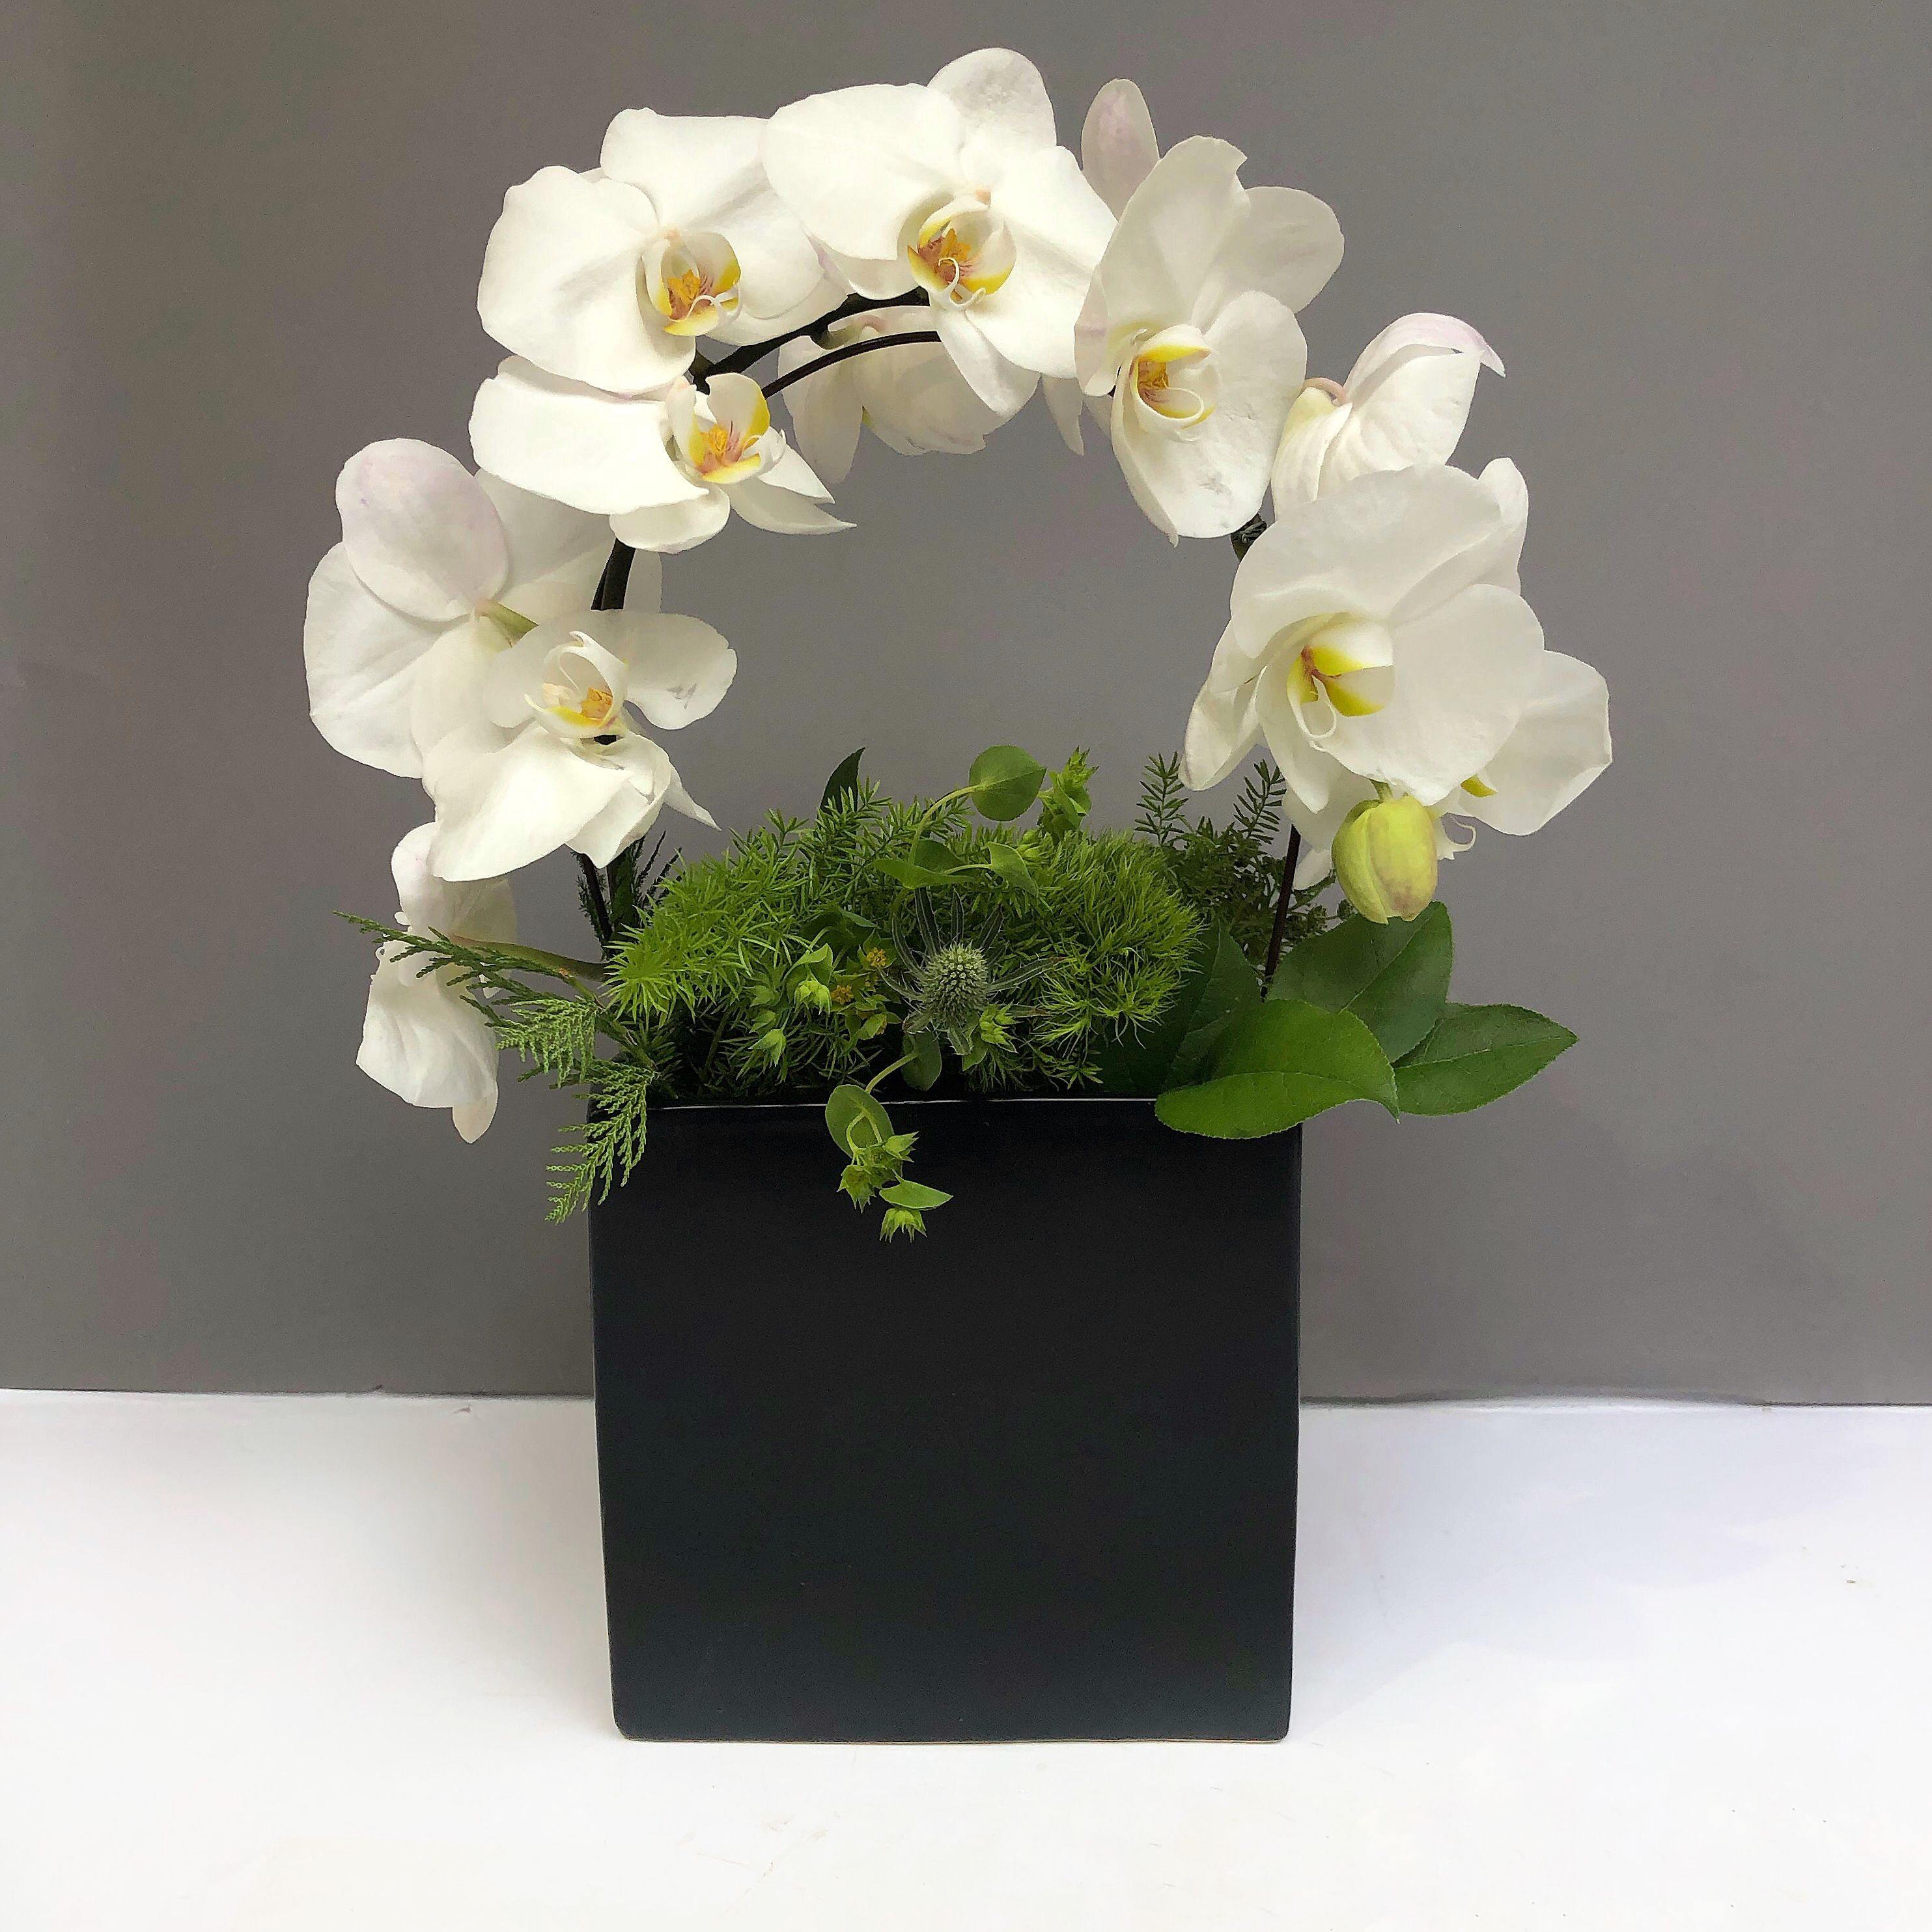 White Phalaenopsis Orchid With Greenery In A Black Vase Same Day Delivery I Orchid Flower Arrangements Flower Arrangements Simple Creative Flower Arrangements